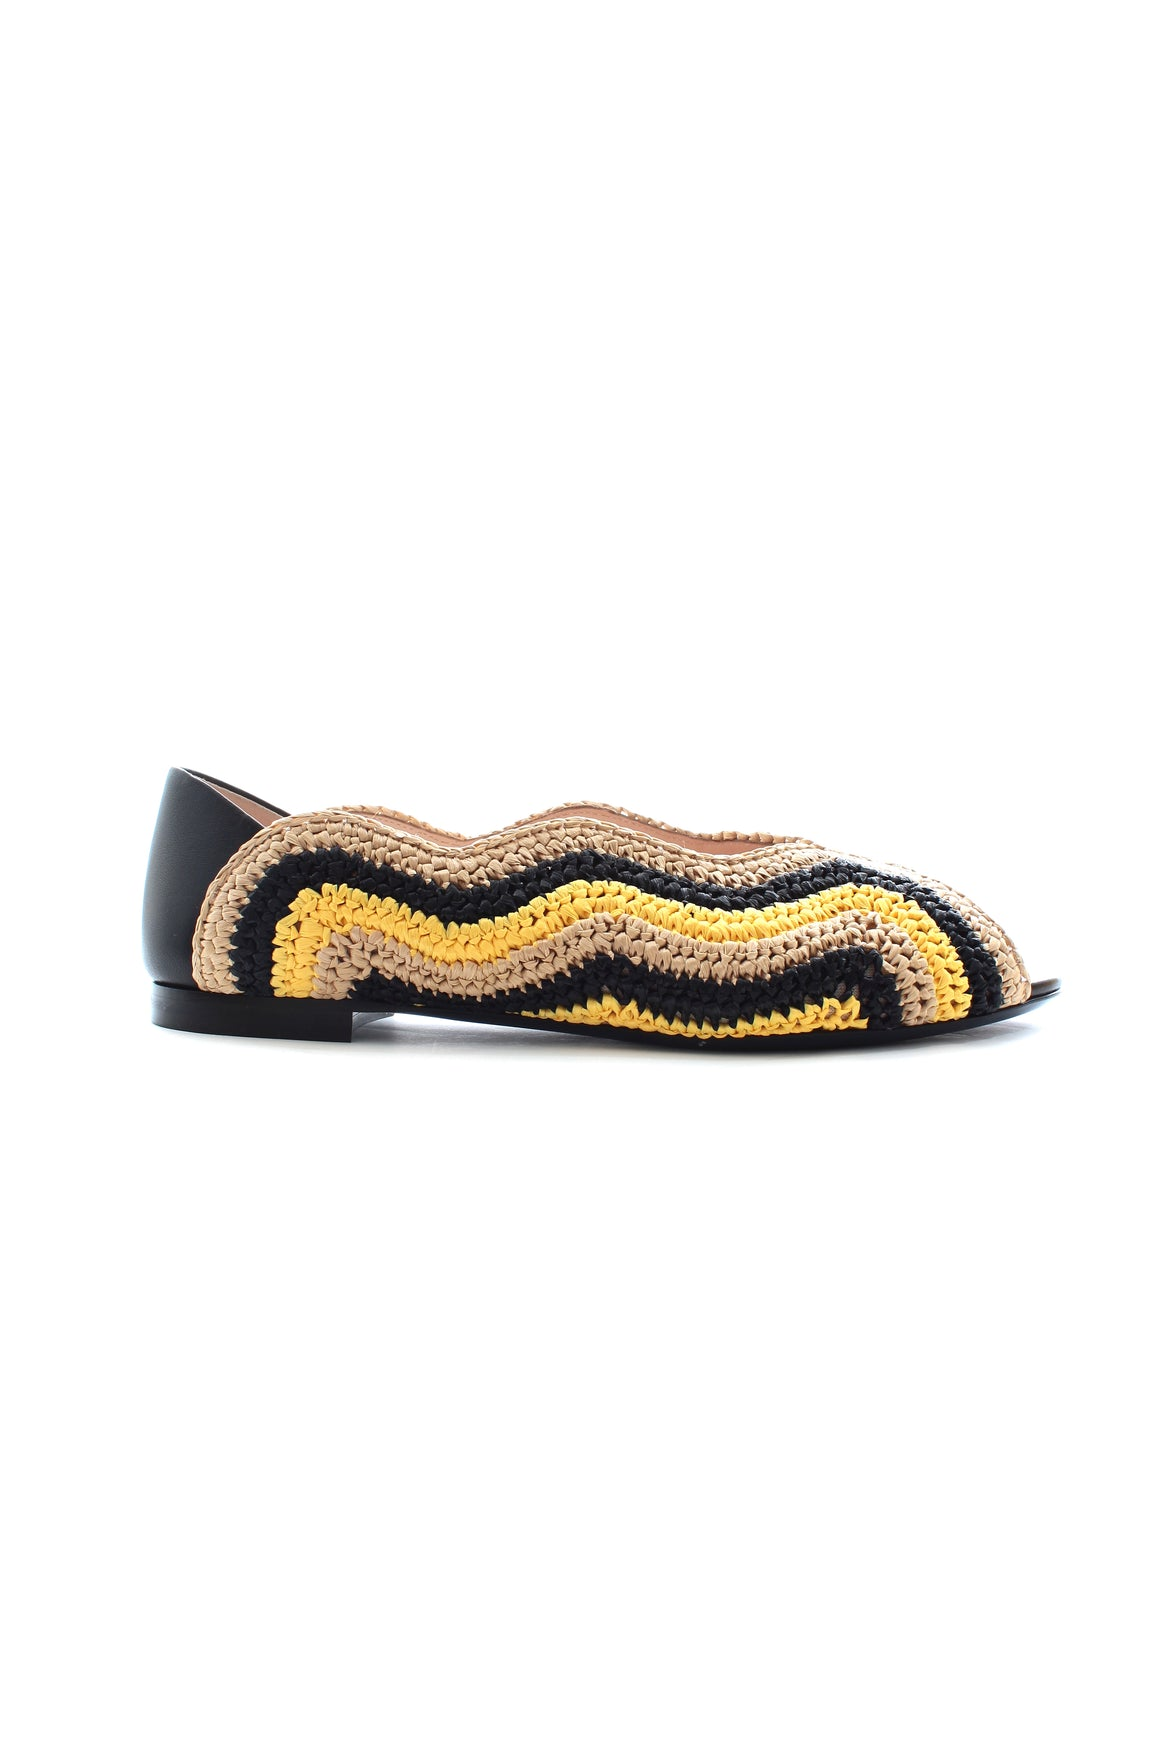 Fendi Raffia and Leather Ballet Flats